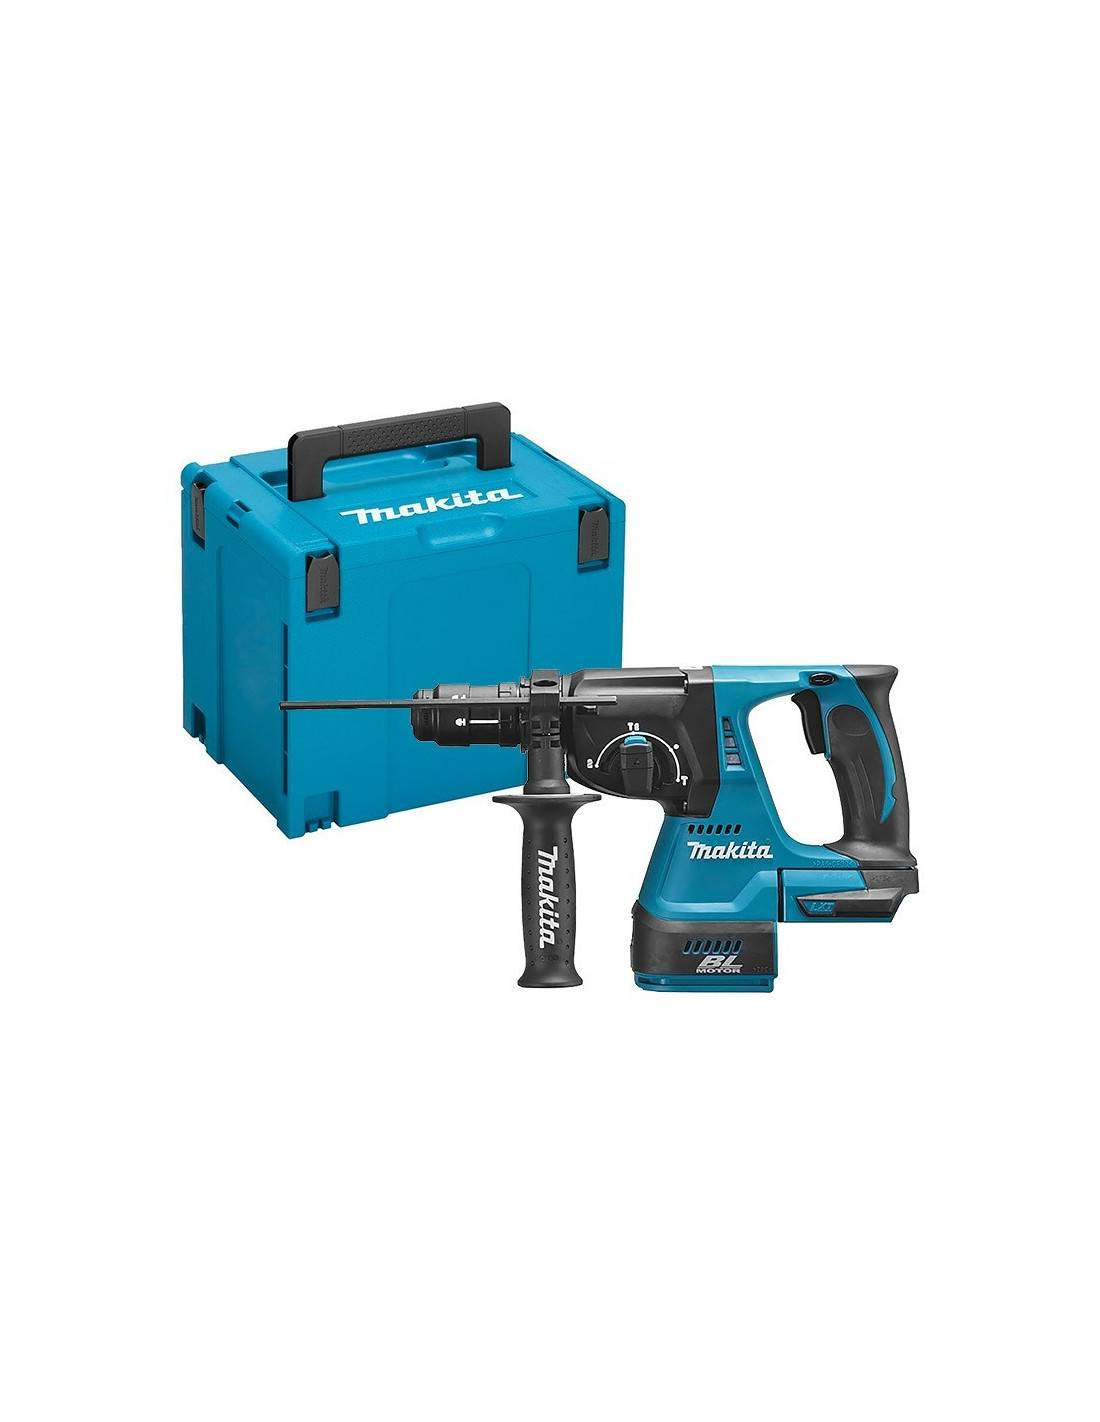 MAKITA - Perfo-burineur SDS+ 36V (2x18V) 26 mm (machine seule) en coffret MAKPAC - DHR264ZJ